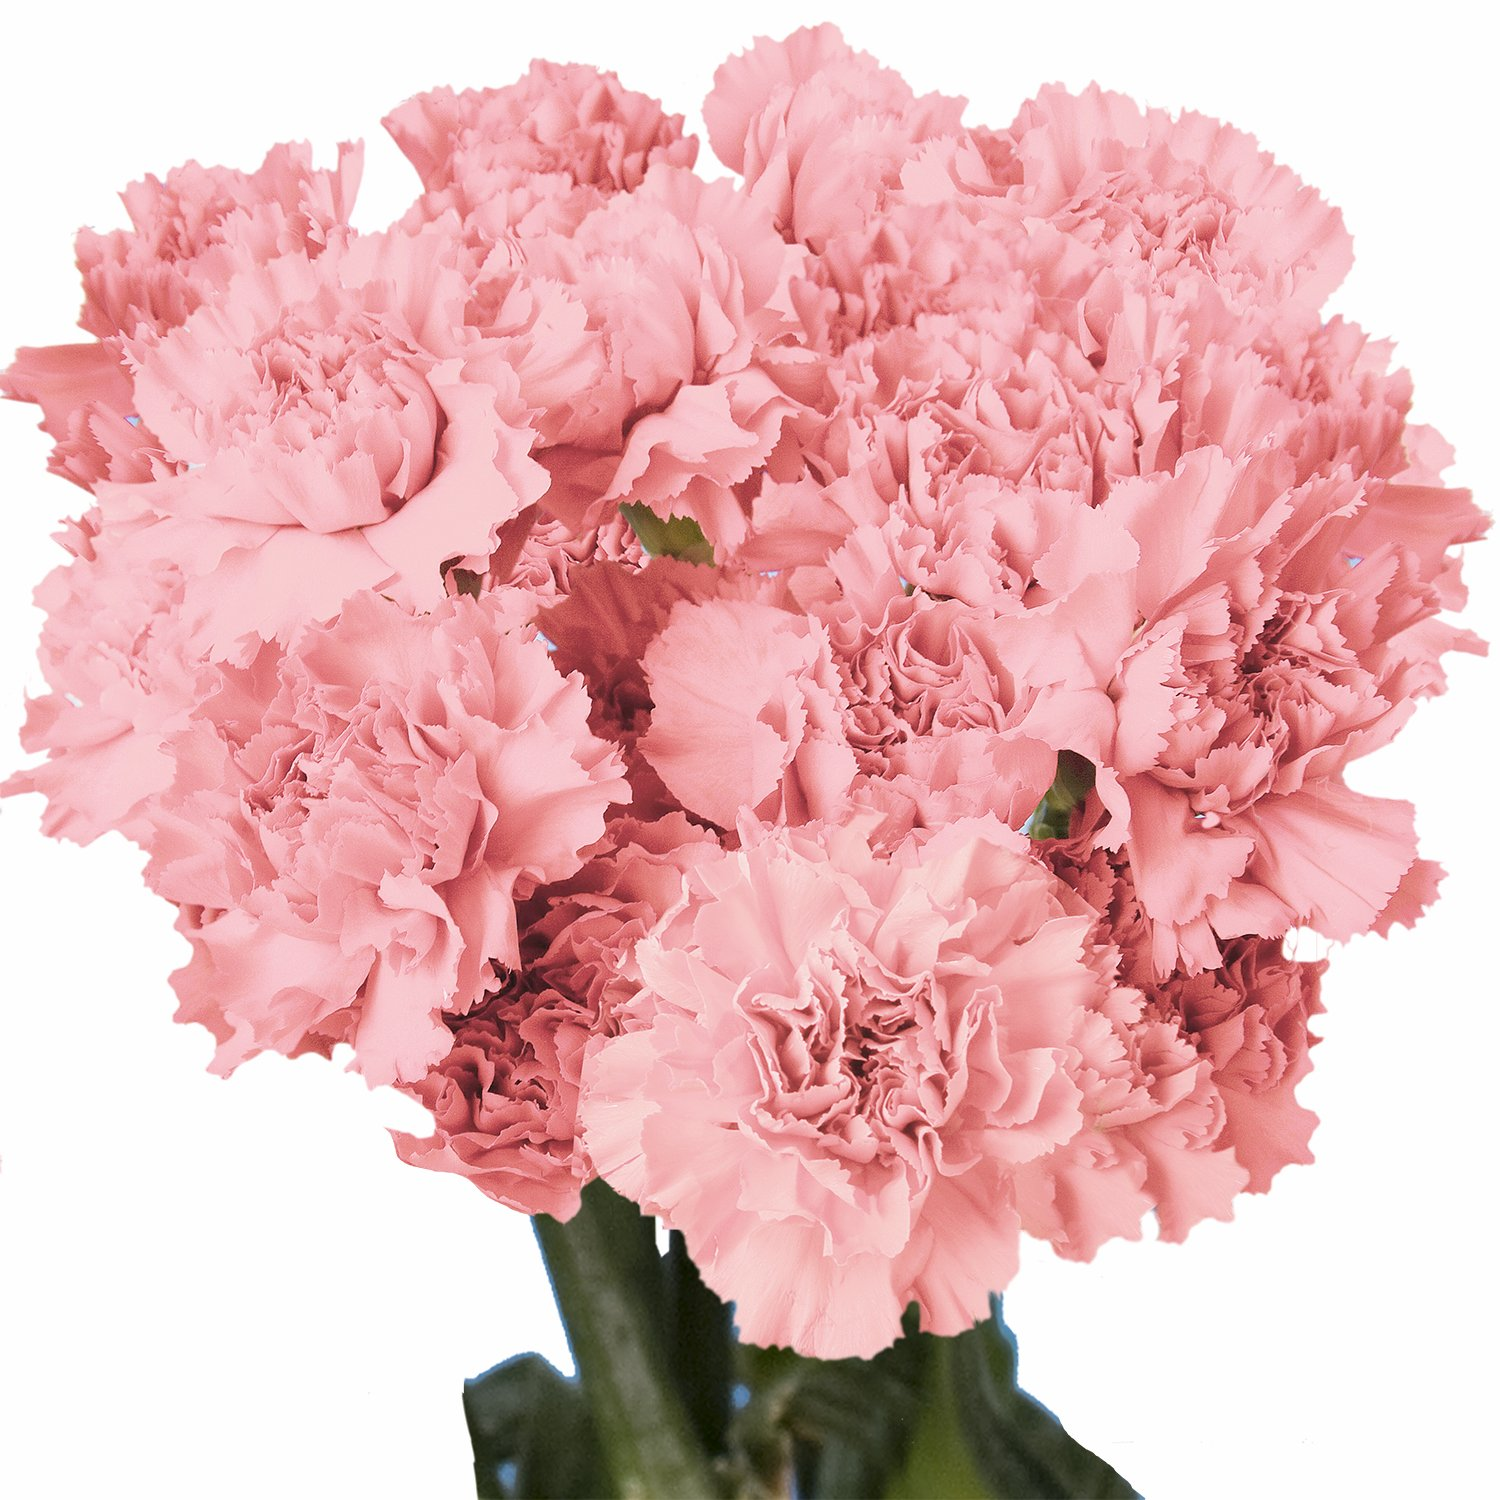 Amazon globalrose 100 pink carnations fresh flowers for amazon globalrose 100 pink carnations fresh flowers for birthdays weddings or special occasions fresh cut format carnation flowers grocery izmirmasajfo